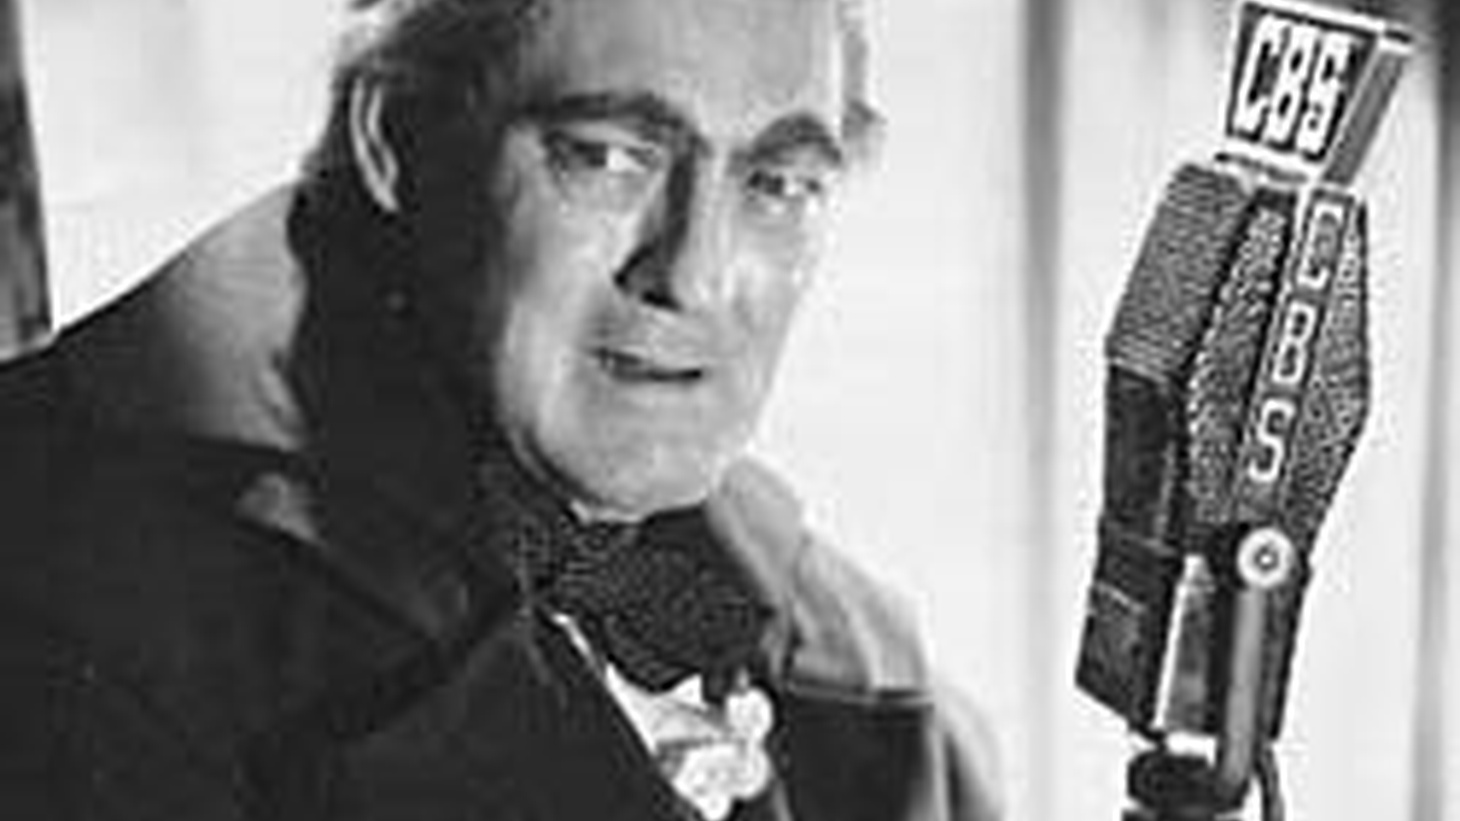 The Dickens classic in a vintage radio performance by legendary actor, Lionel Barrymore, narrated by Orson Welles, with music by Bernard Hermann. (Airs 7-8pm; rebroadcast Christmas Day from 3-4pm)